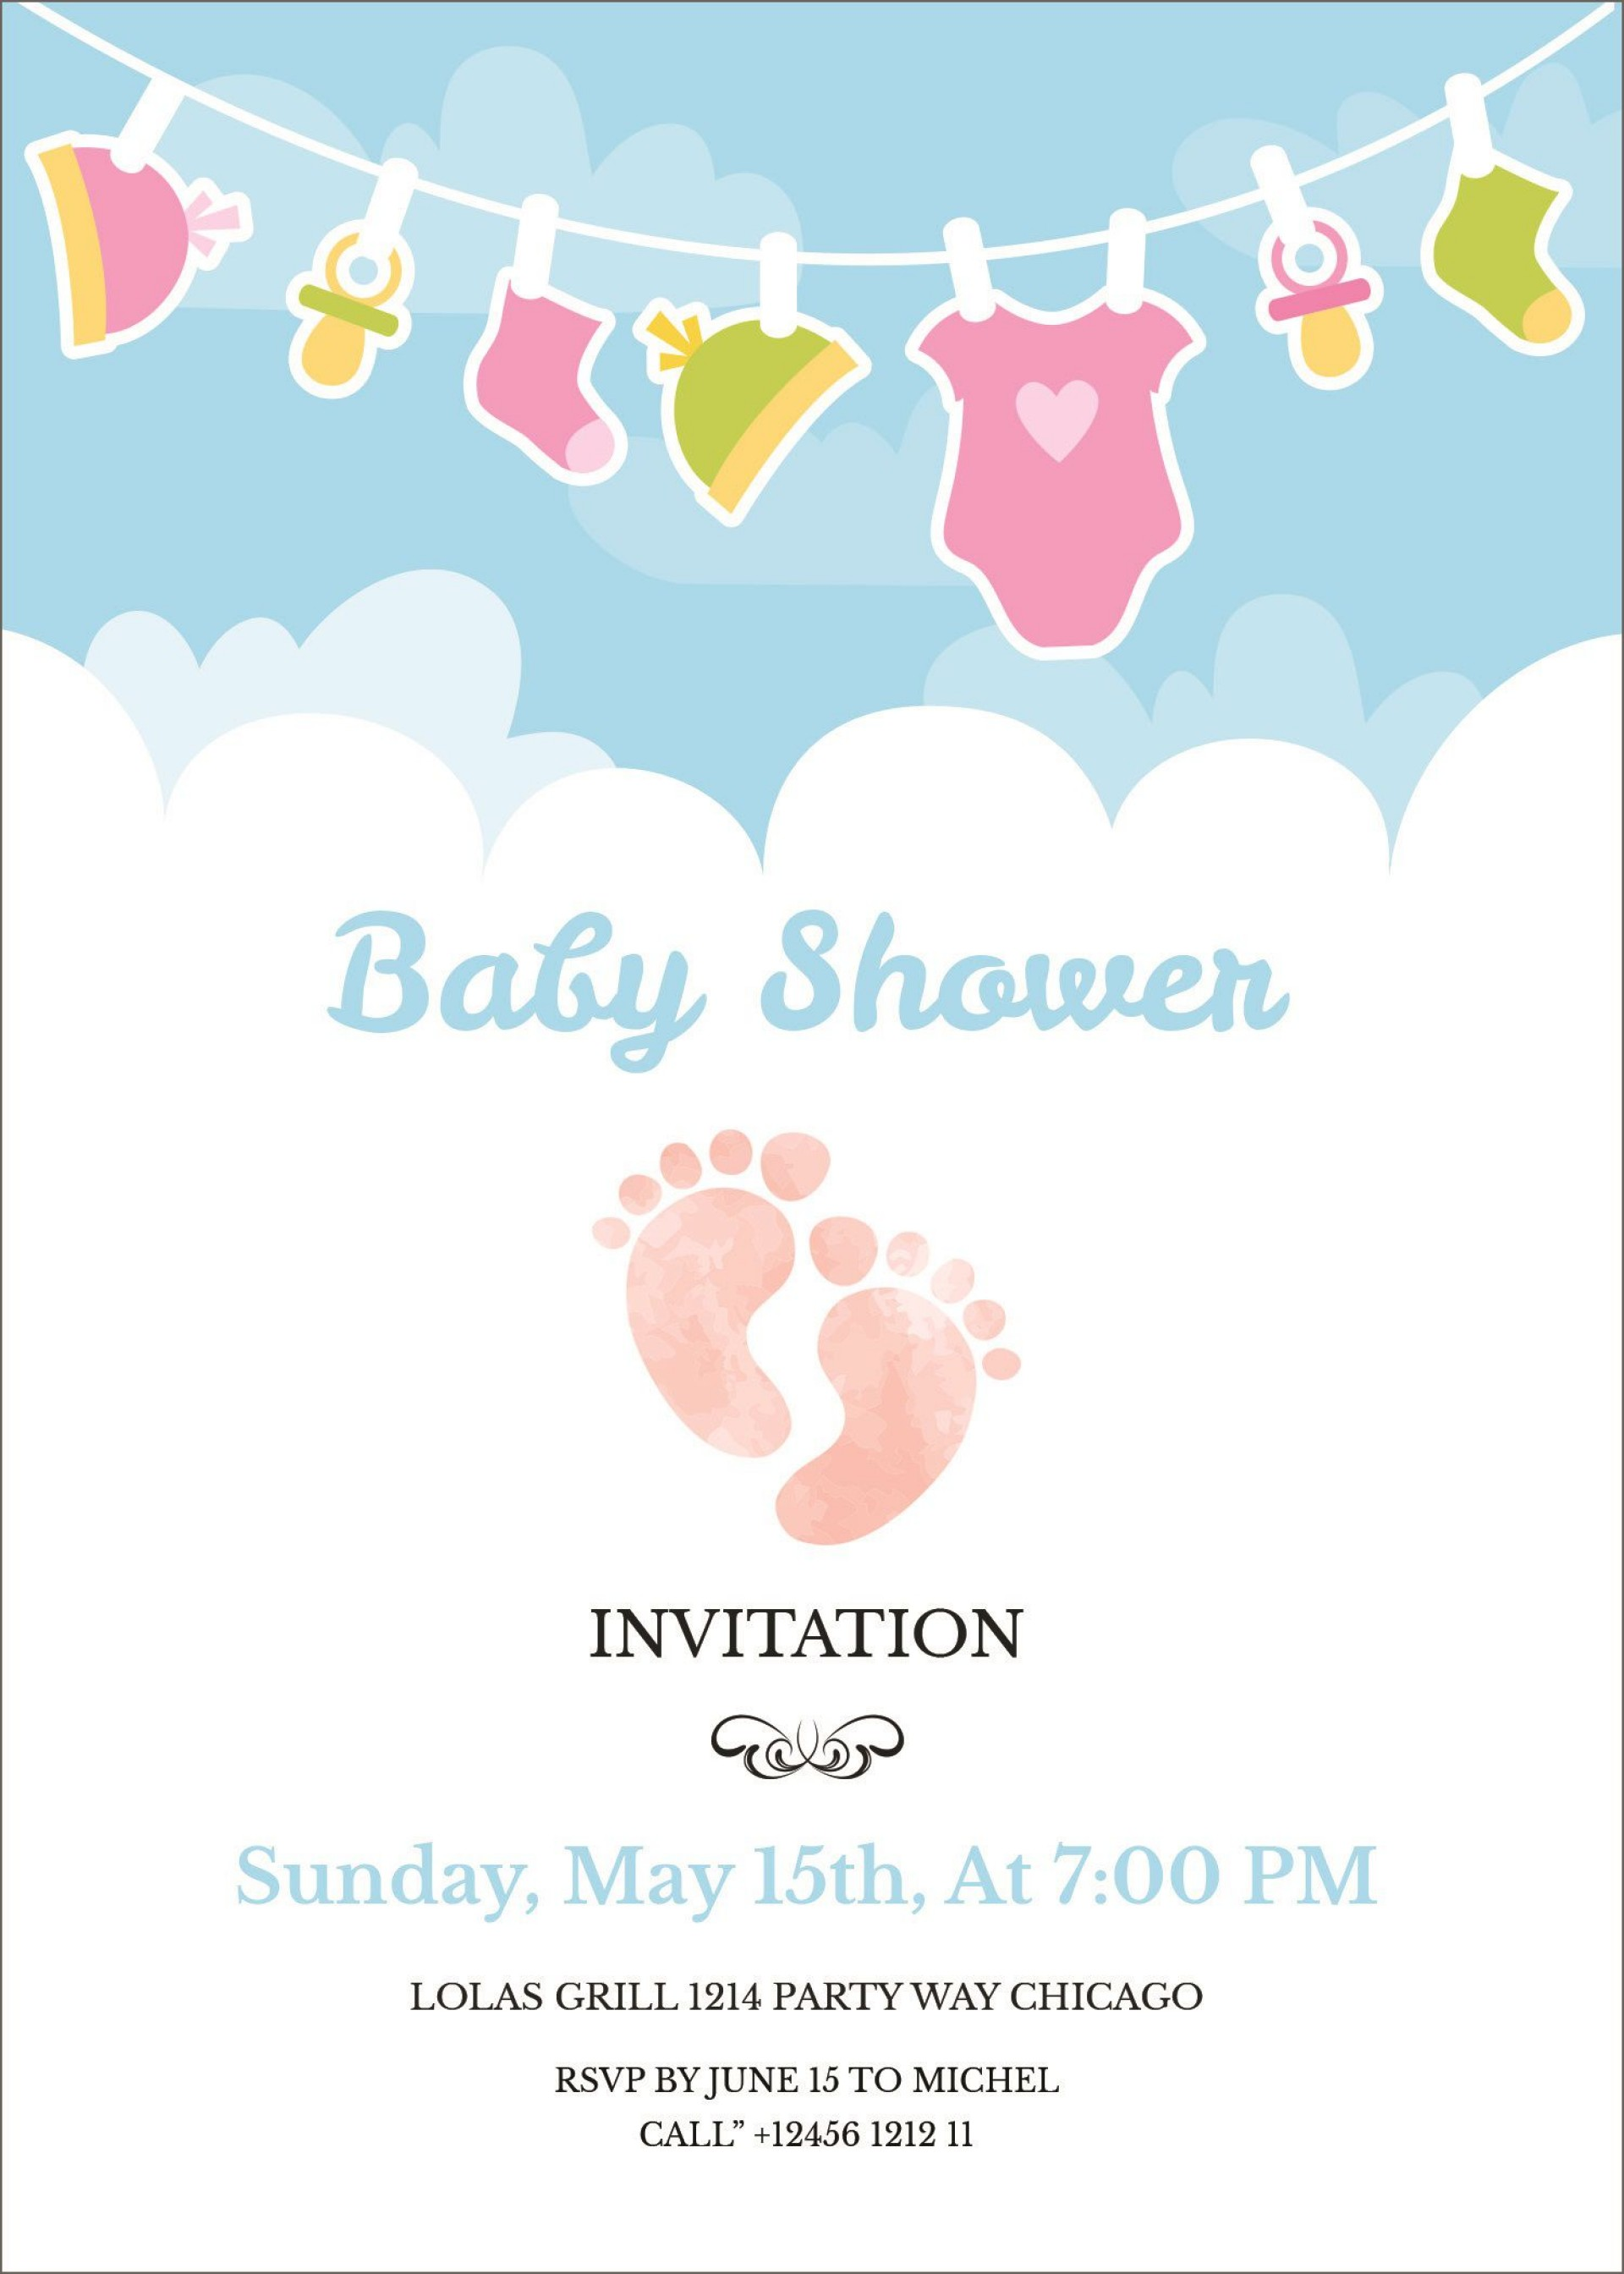 004 Exceptional Baby Shower Invitation Template Image  Editable Girl Downloadable Free Pdf Virtual1920